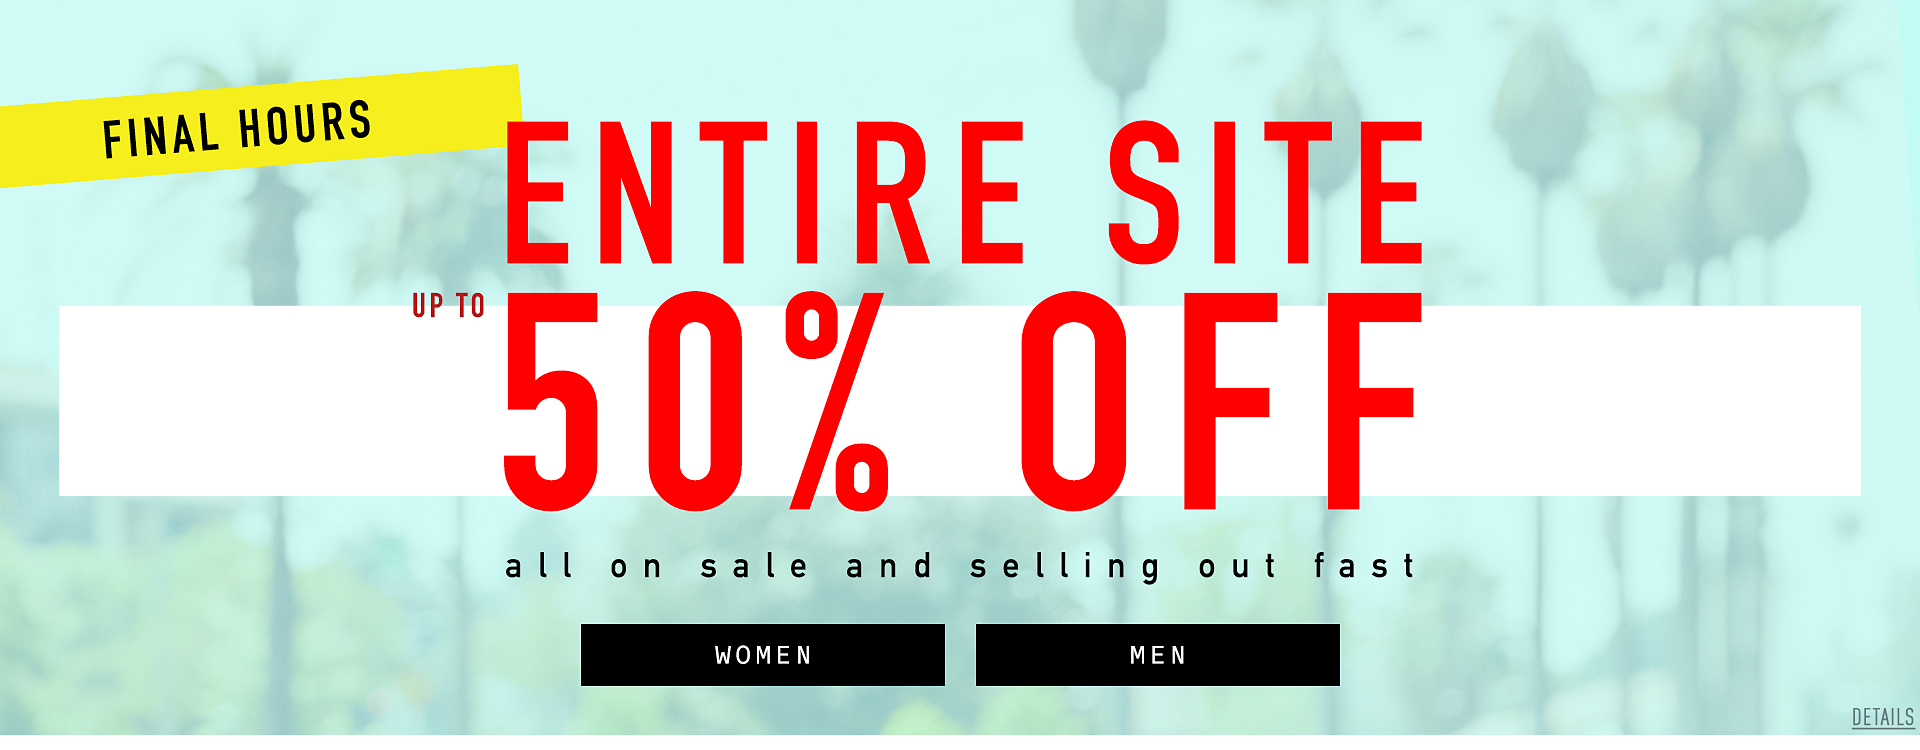 Up to 50% Off FINAL HOURS